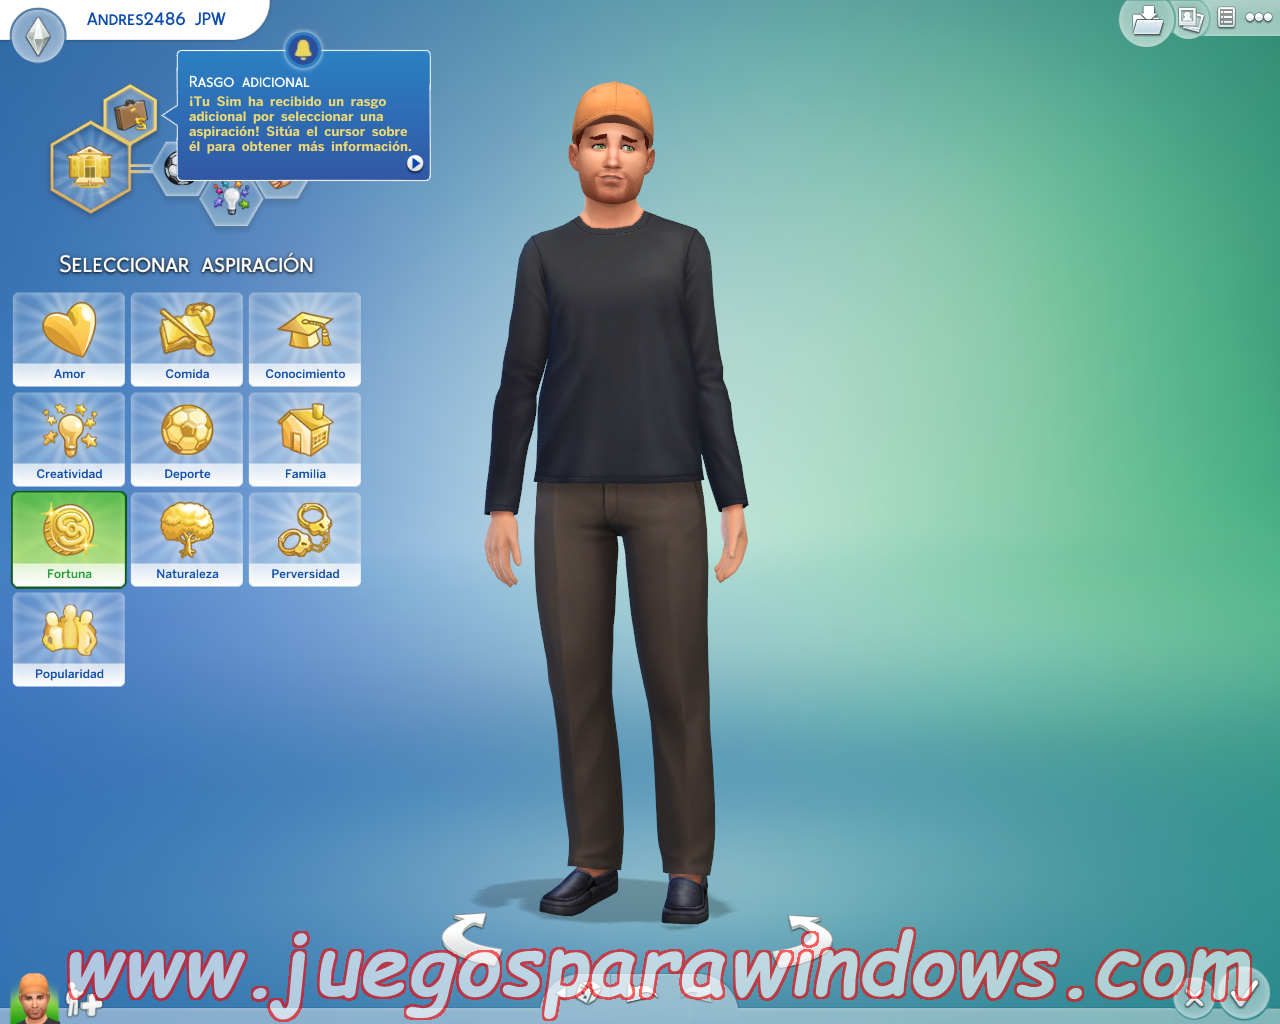 Los Sims 4 Digital Deluxe Edition ESPAÑOL PC Full + Update v1.4.83.1010 Incl DLC (RELOADED) 12